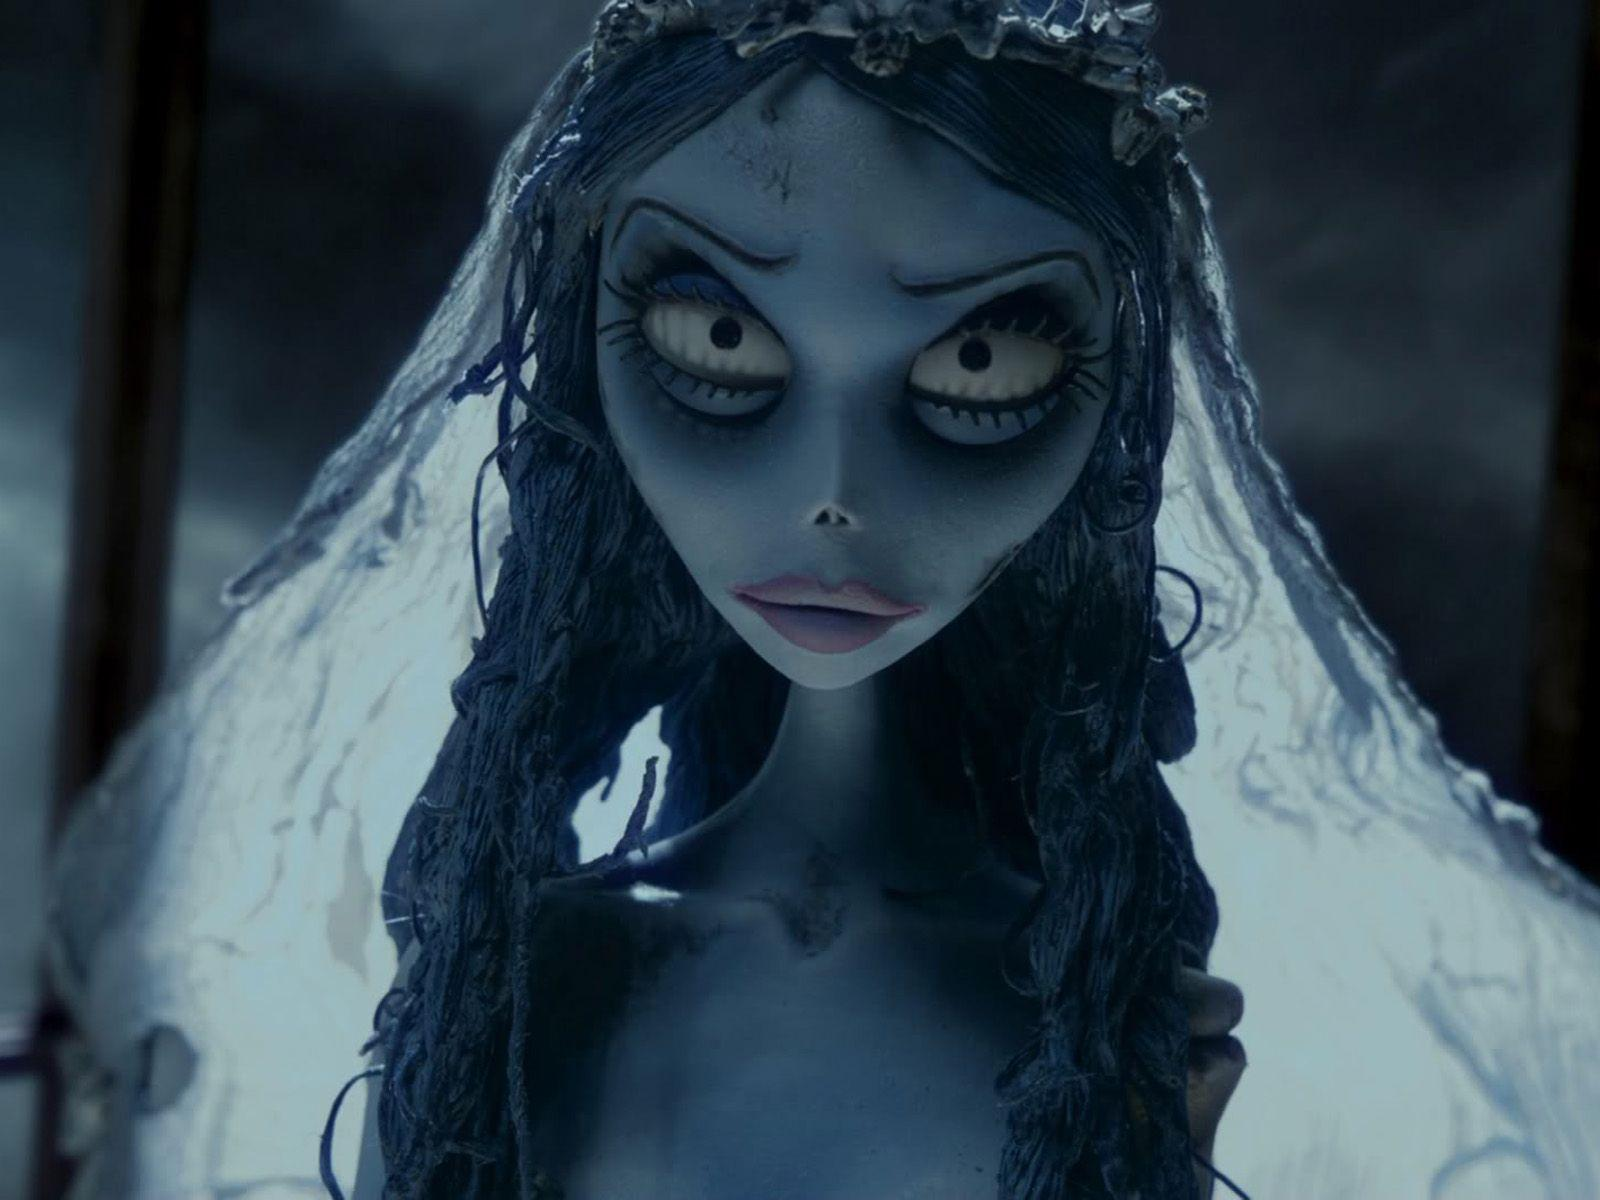 Pin Corpse Bride Ipad Wallpapers On Pinterest 1600x1200PX ~ Corpse